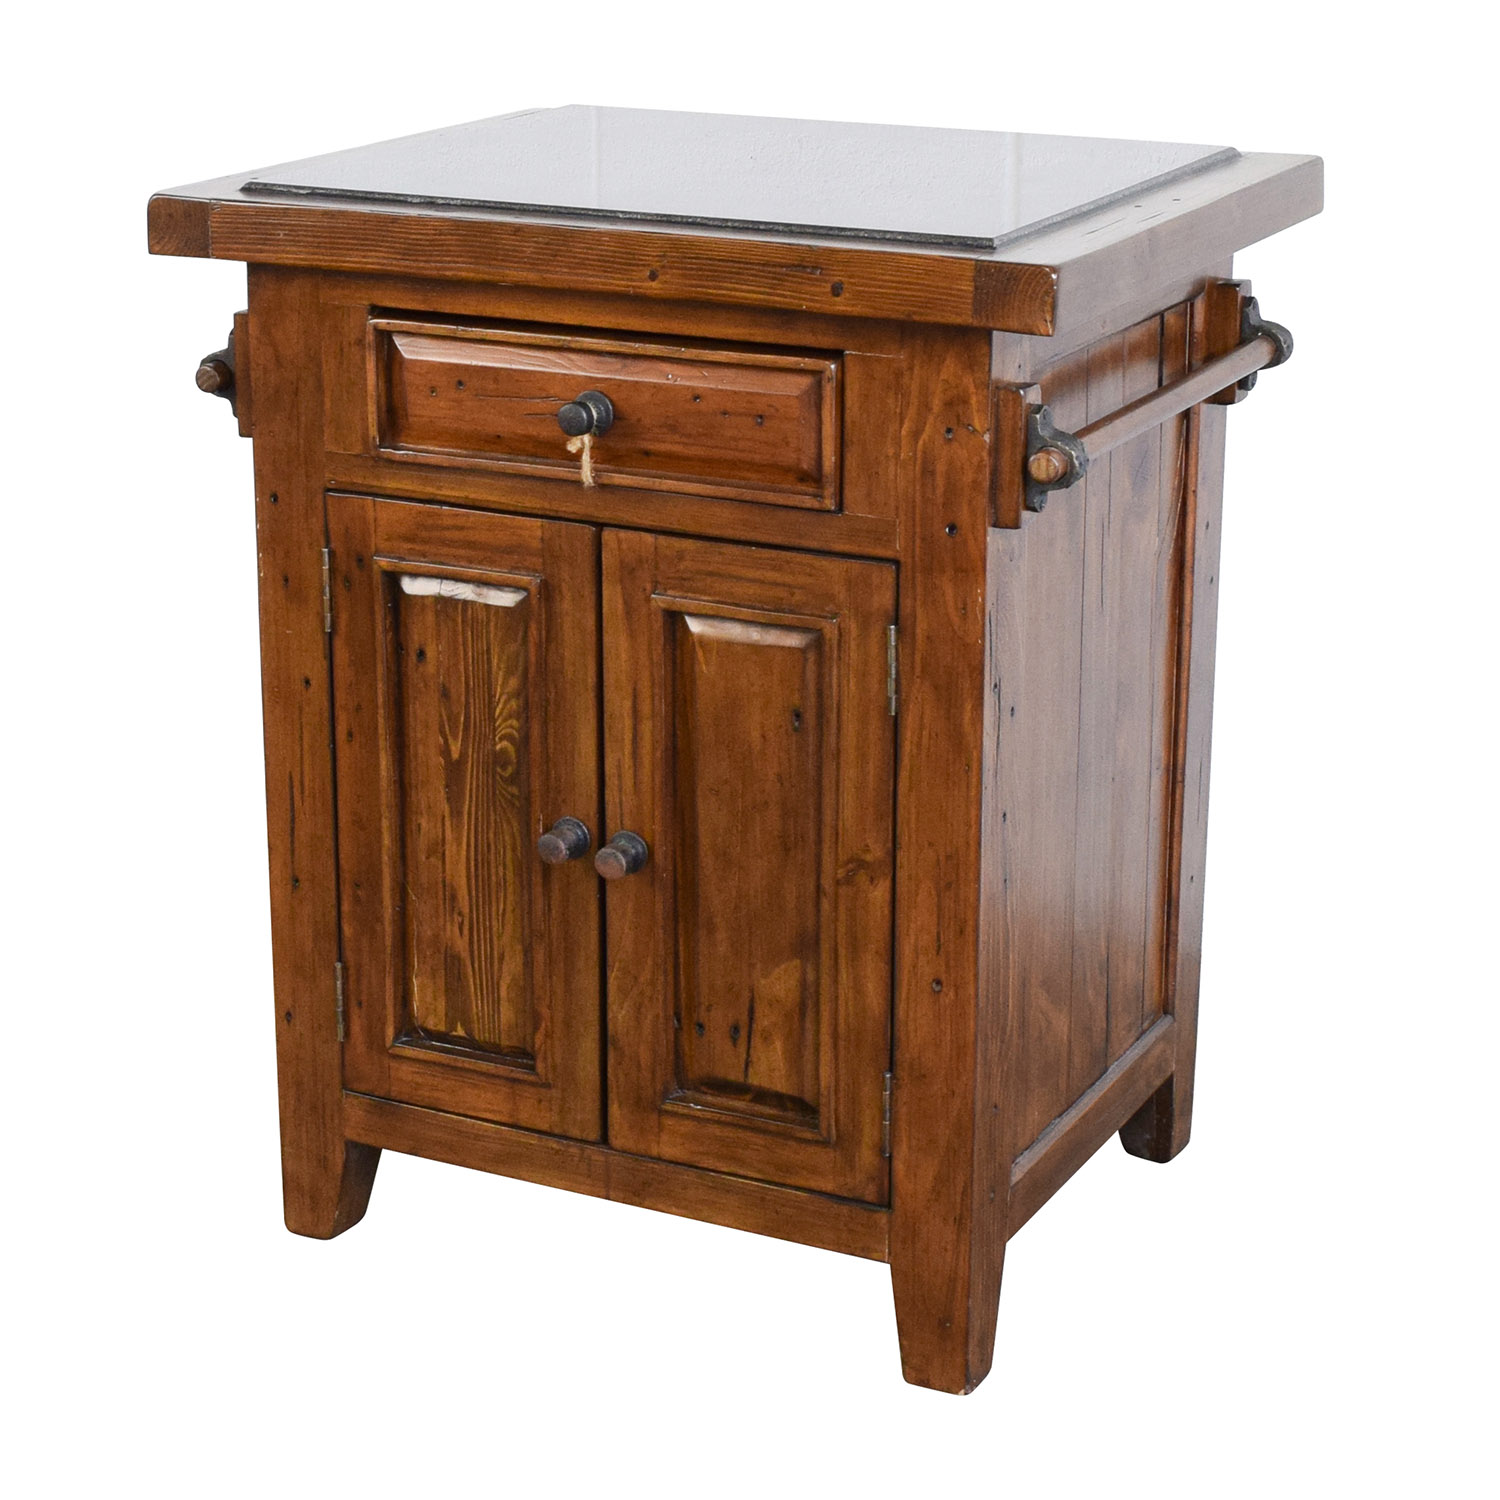 Wood Kitchen Island With Black Marble Top / Tables